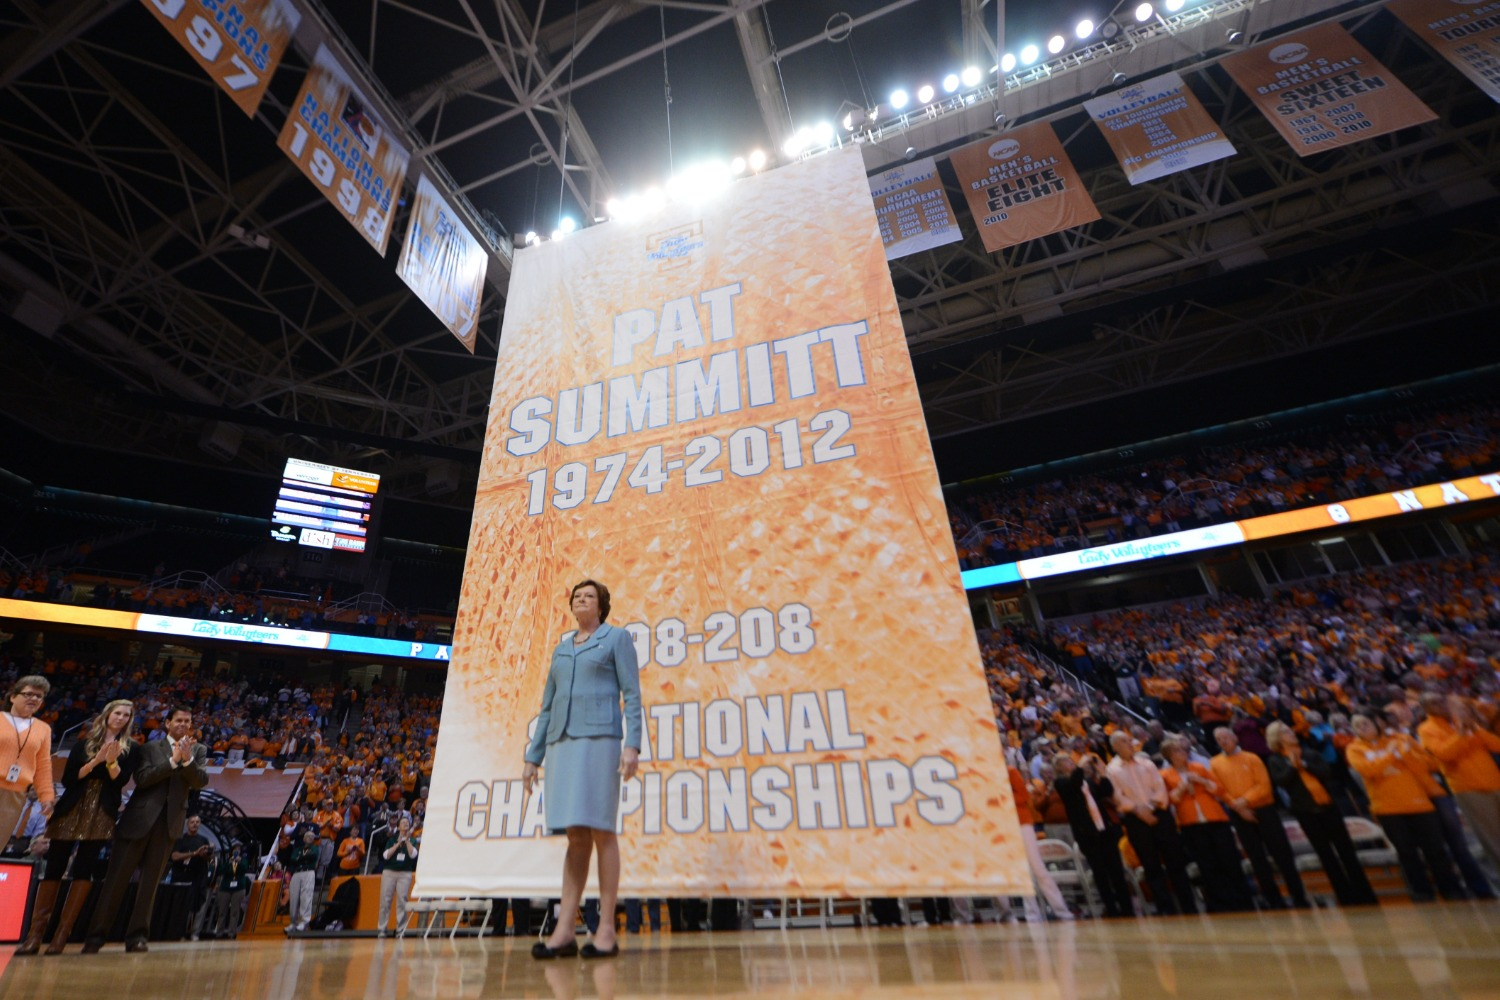 Pat Summitt became the greatest women's basketball coach in history at the University of Tennessee before she tragically died at age 64.